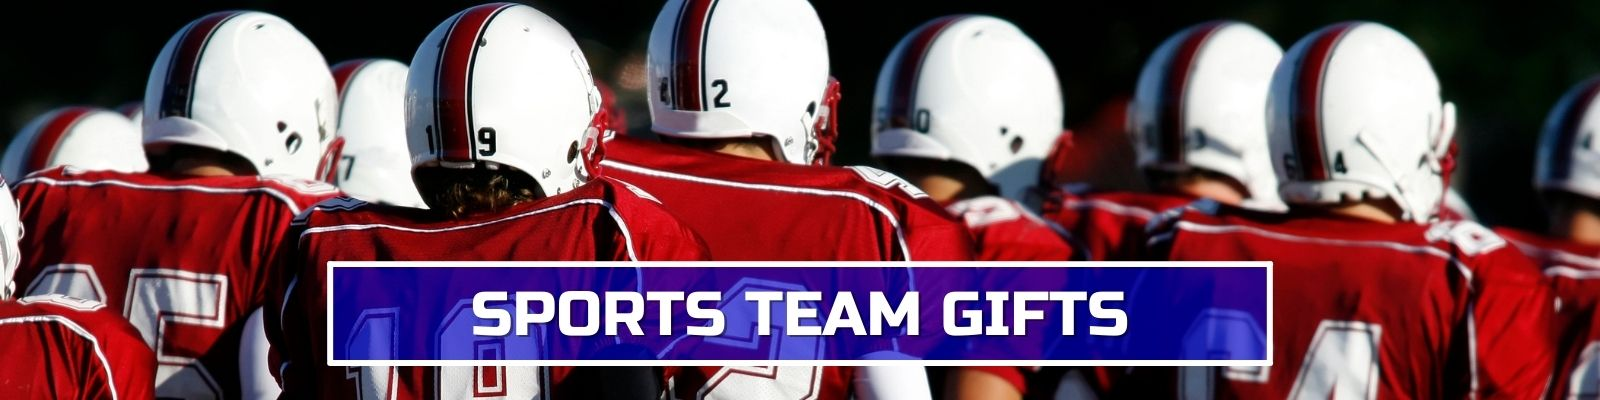 sports-team-gifts